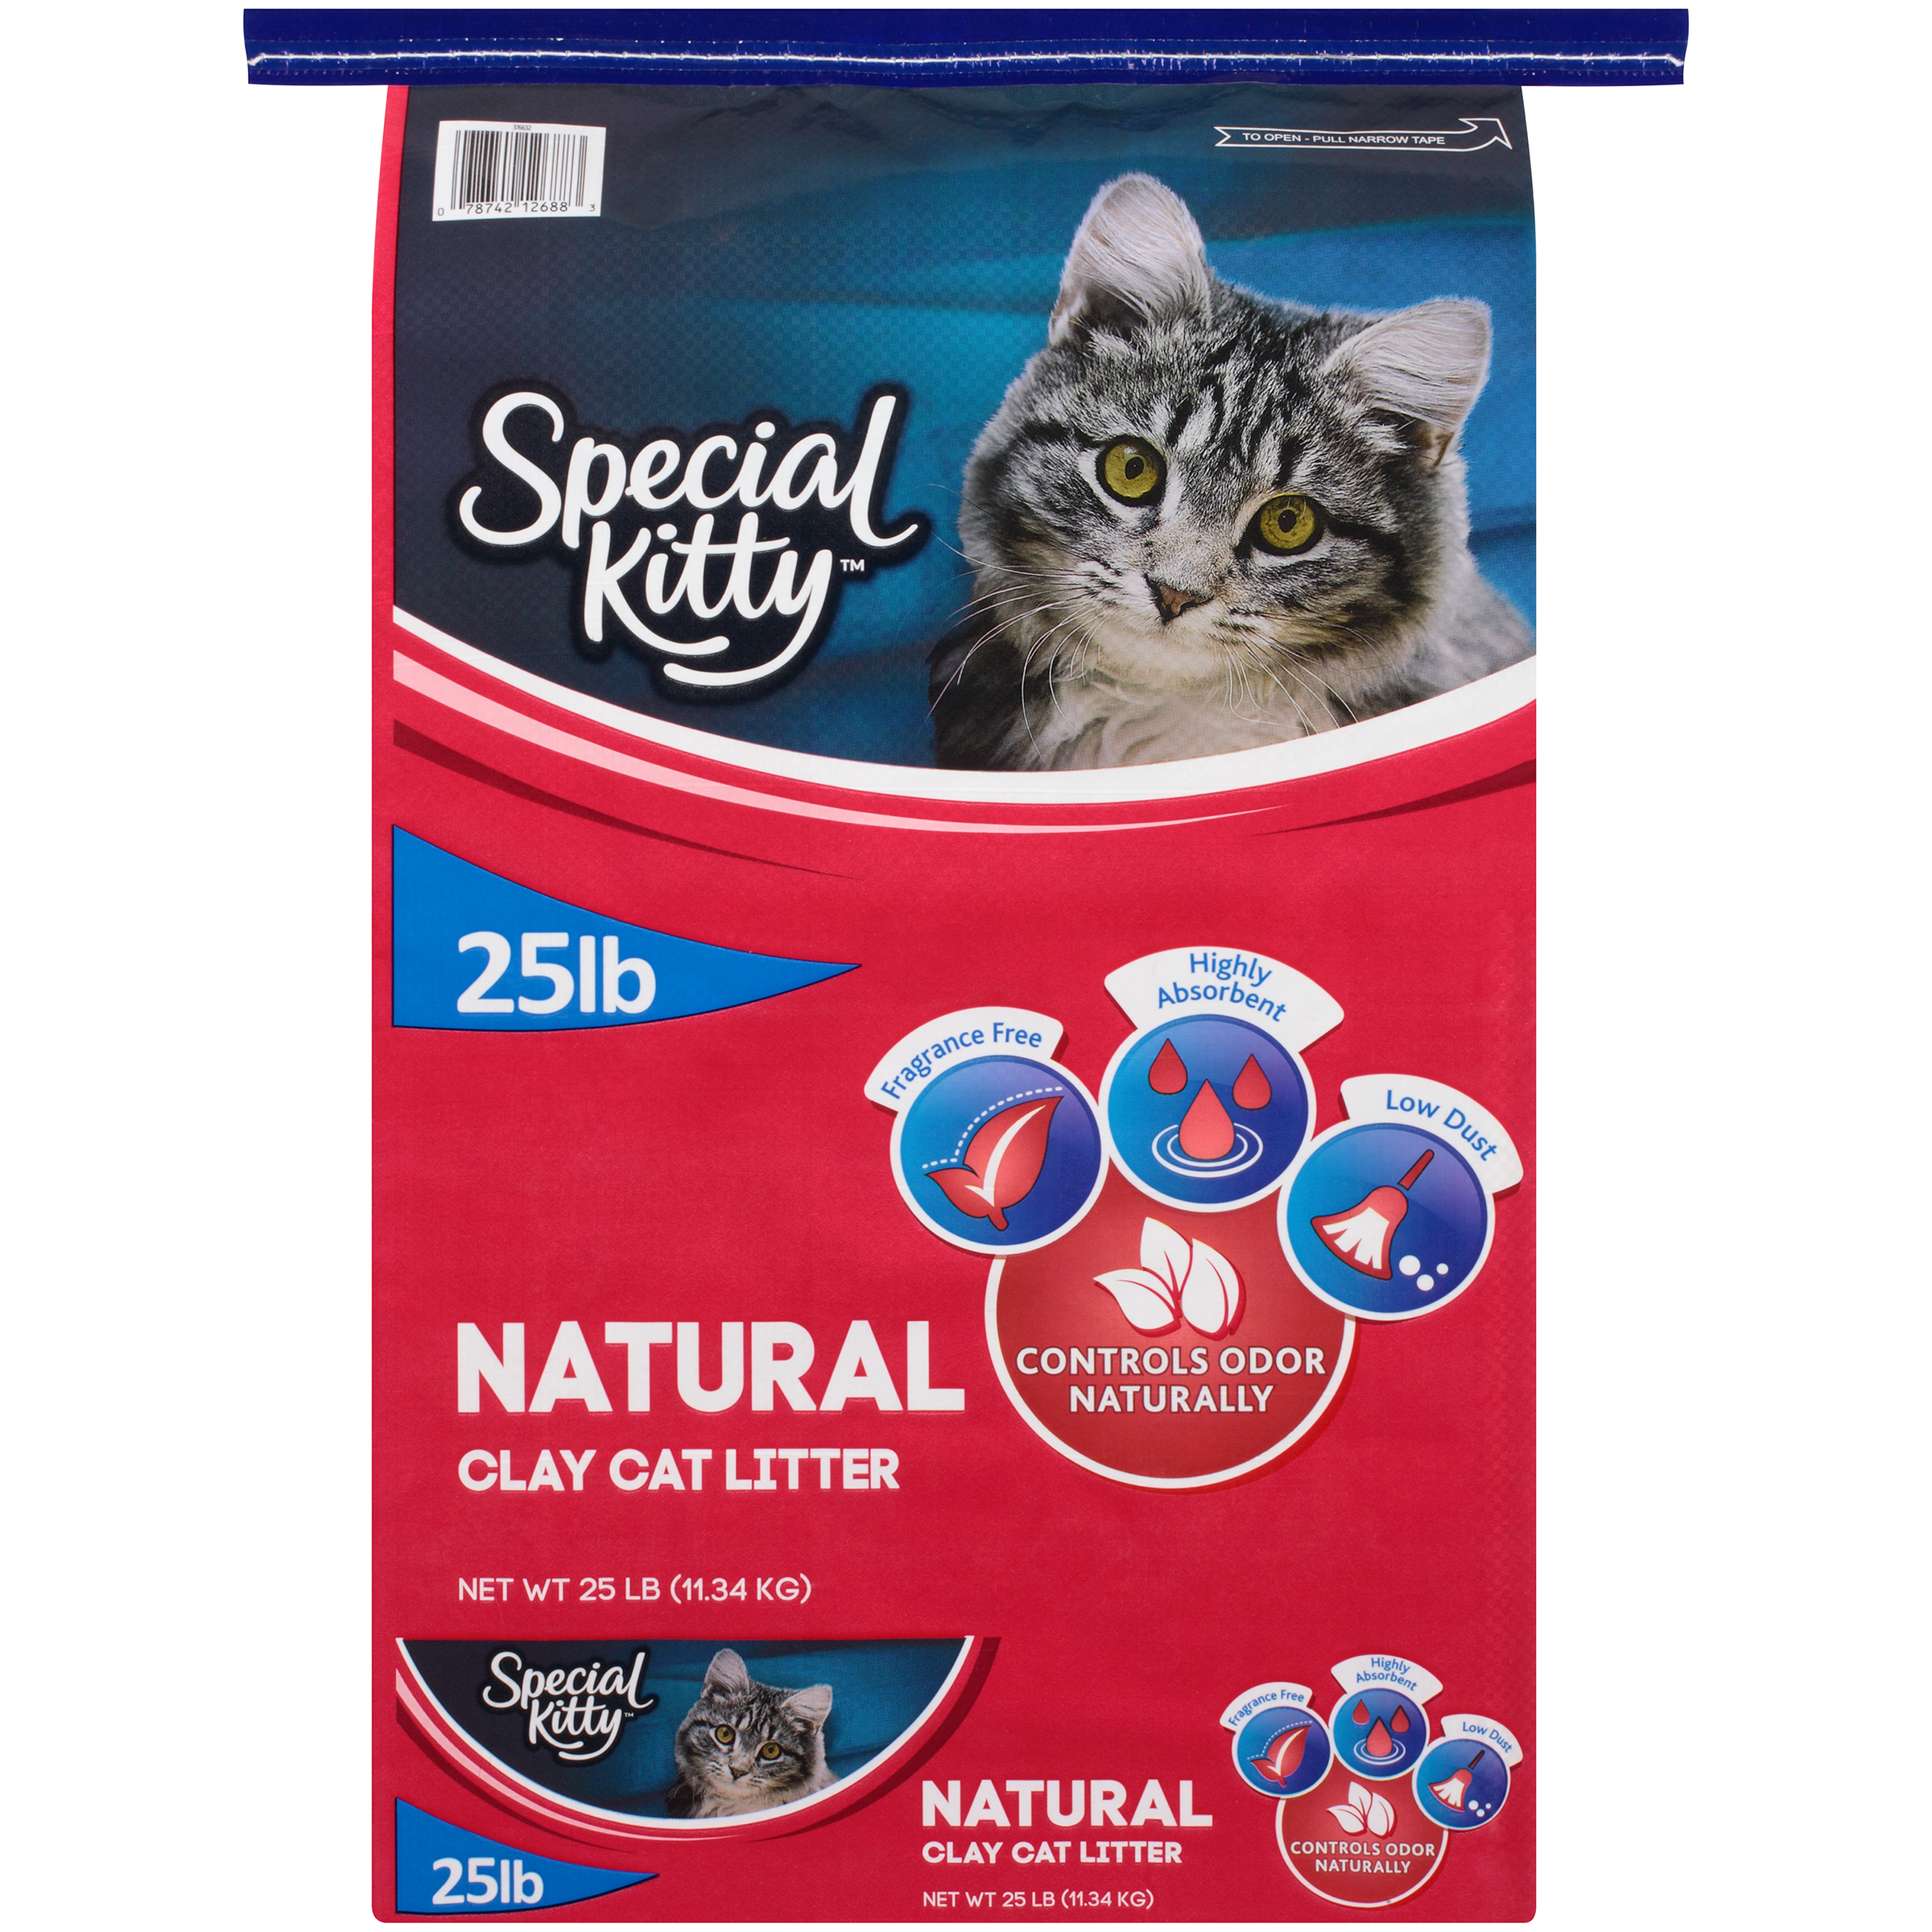 Special Kitty Natural Clay Cat Litter, Unscented, 25 lb